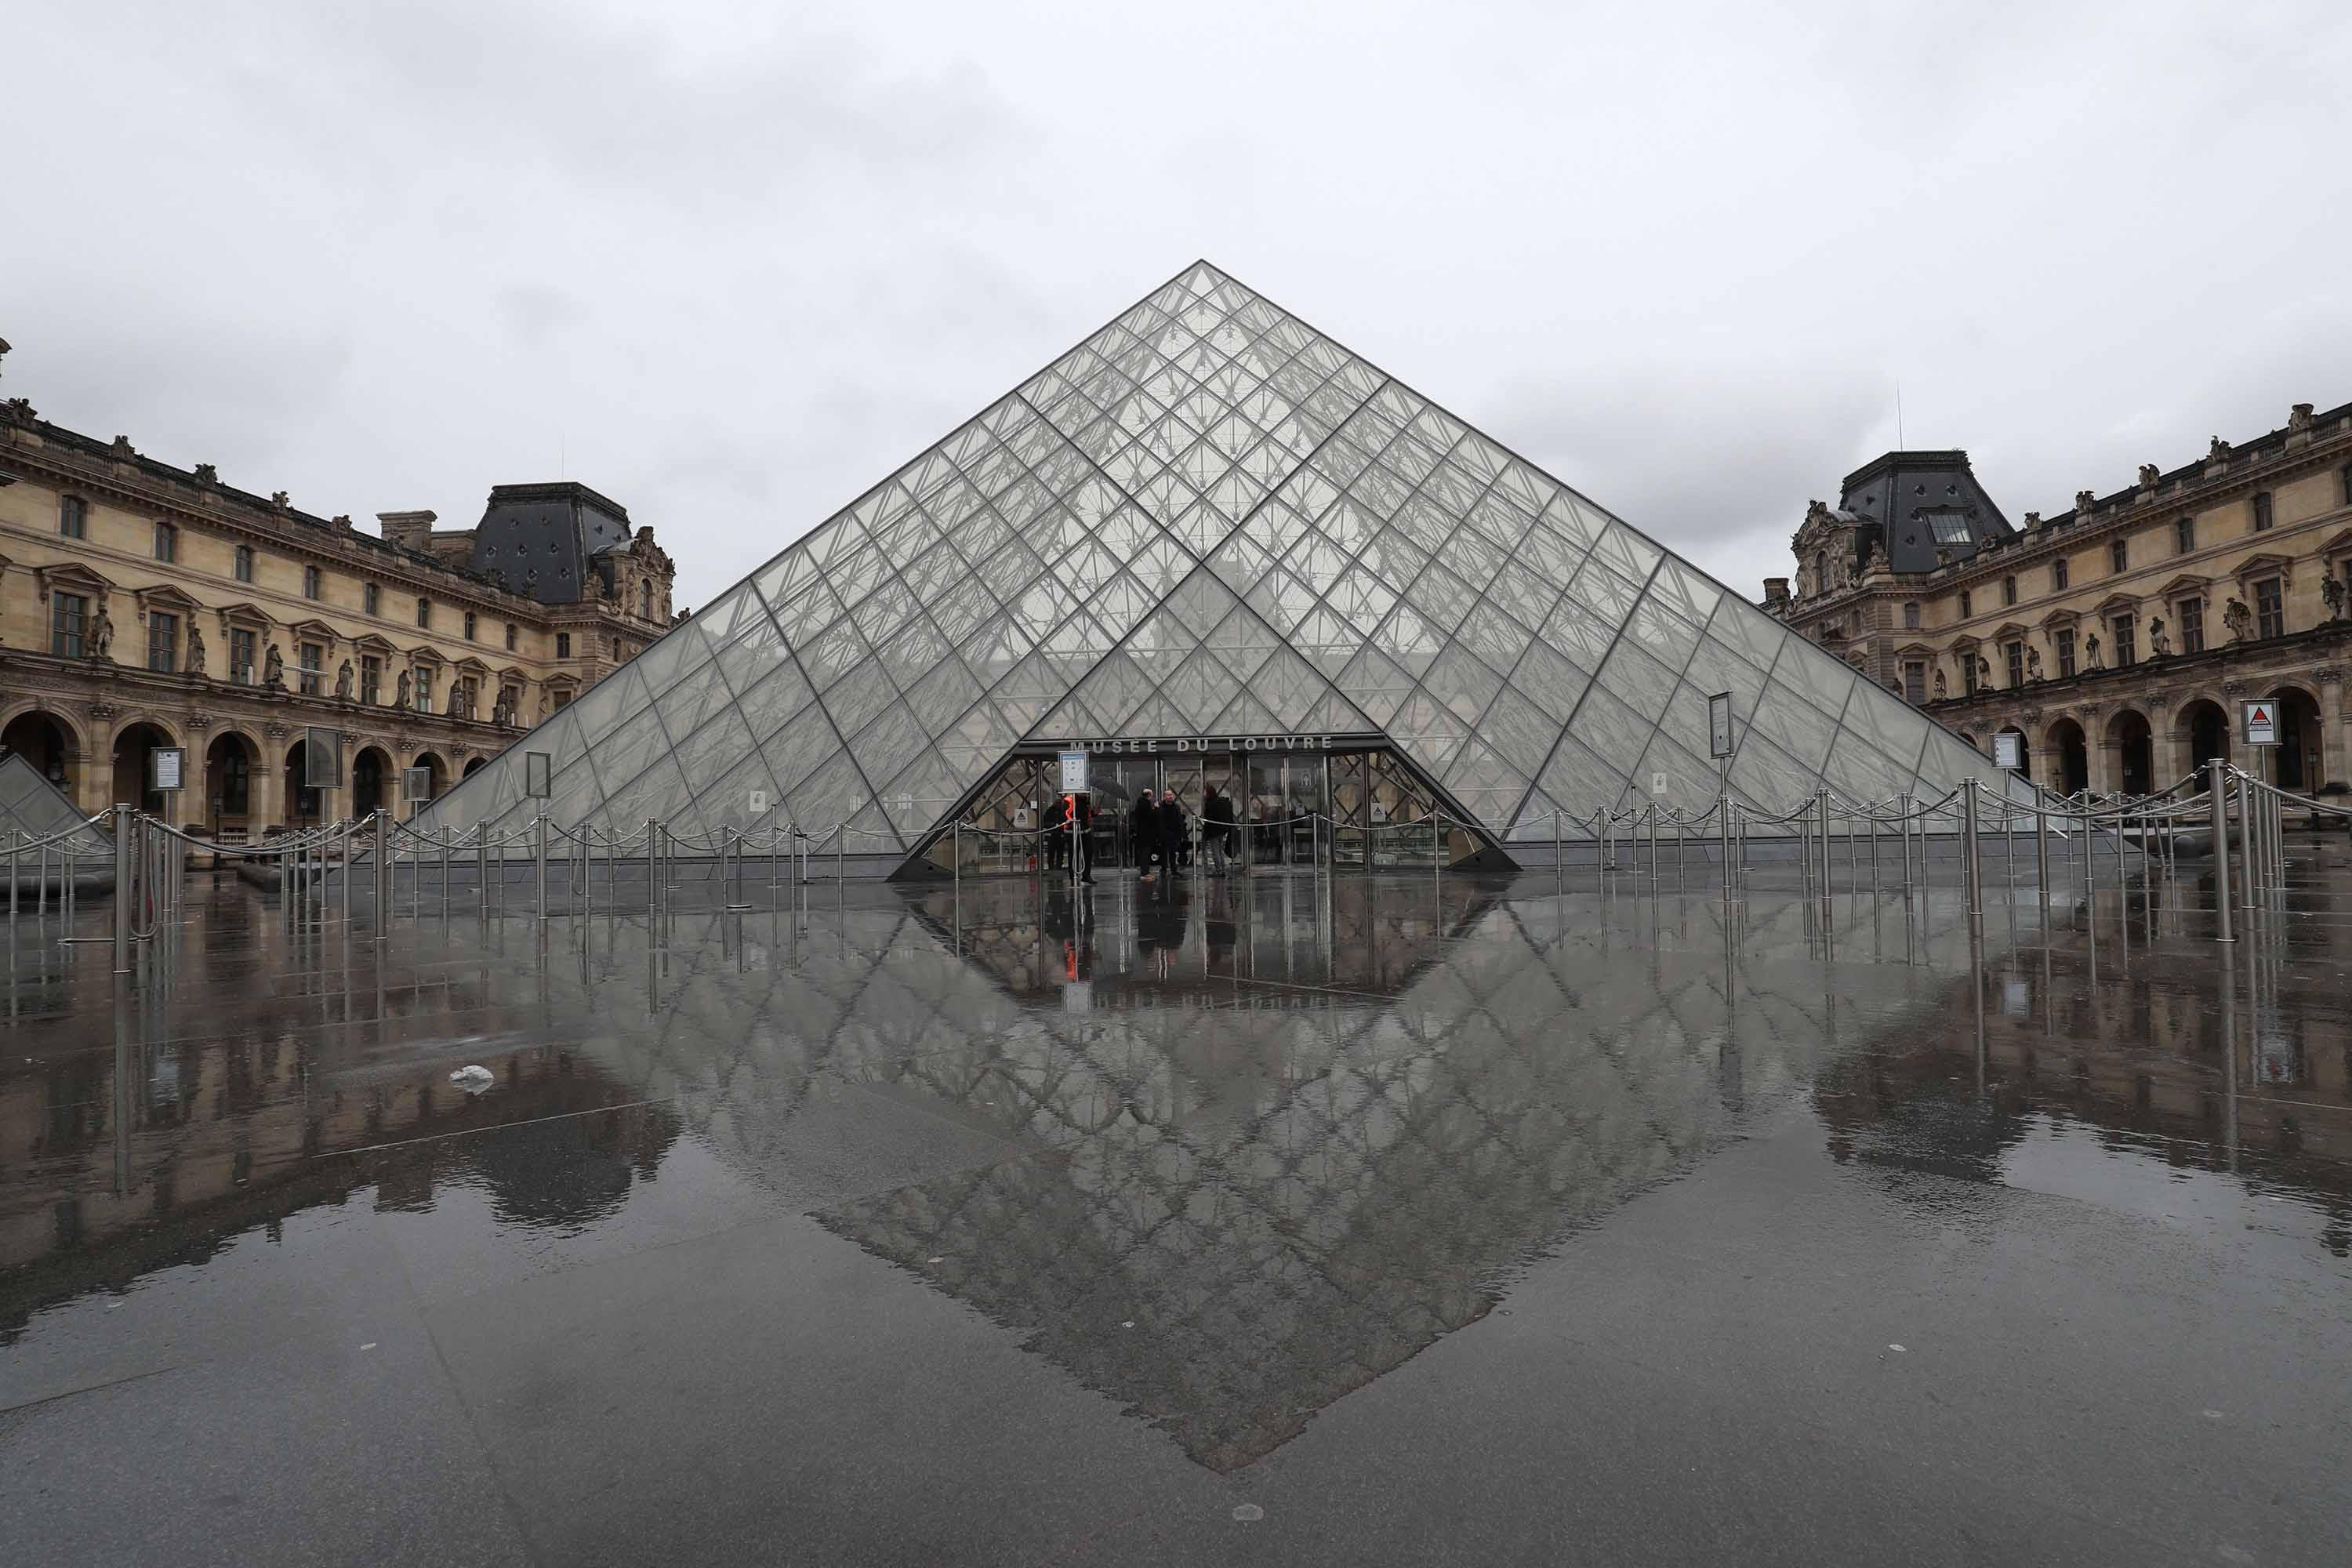 A view of the entrance to the Louvre museum in Paris, France, on March 2.